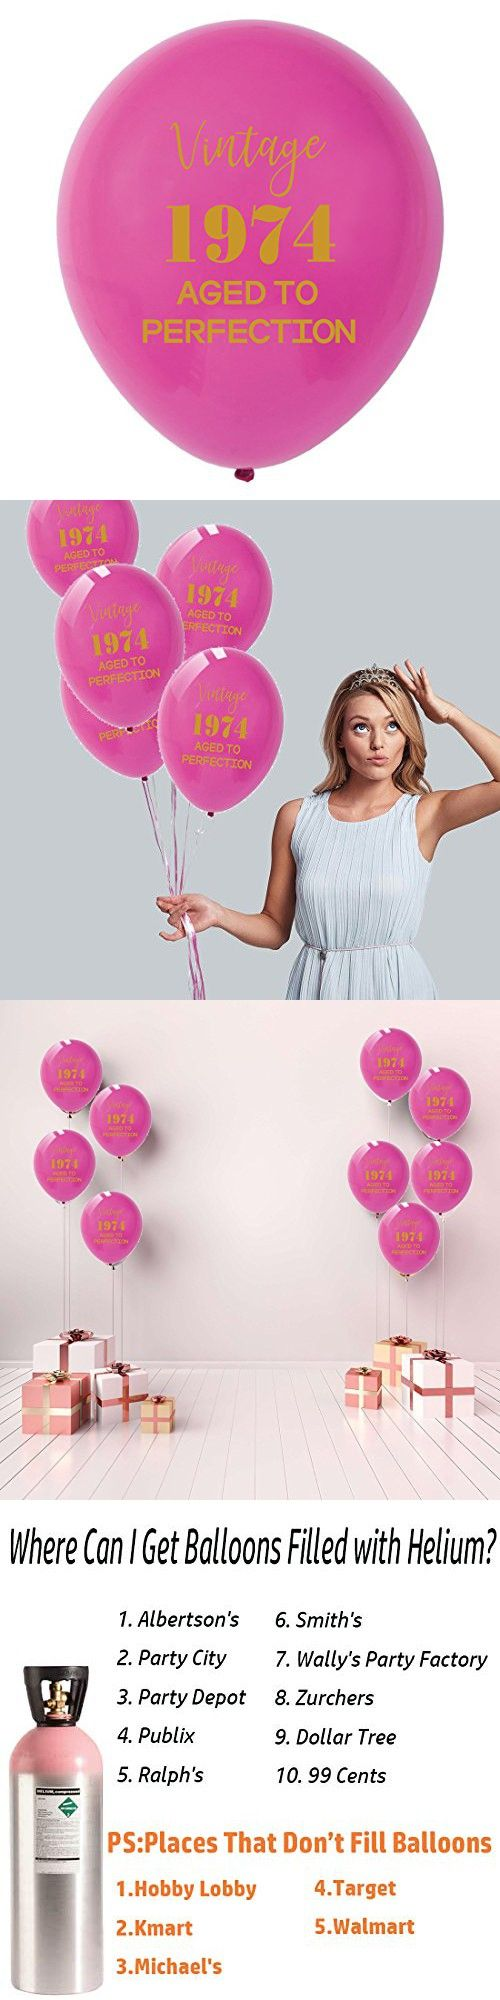 Pink Vintage 1974 Balloons – 12inch (16pcs) Men and